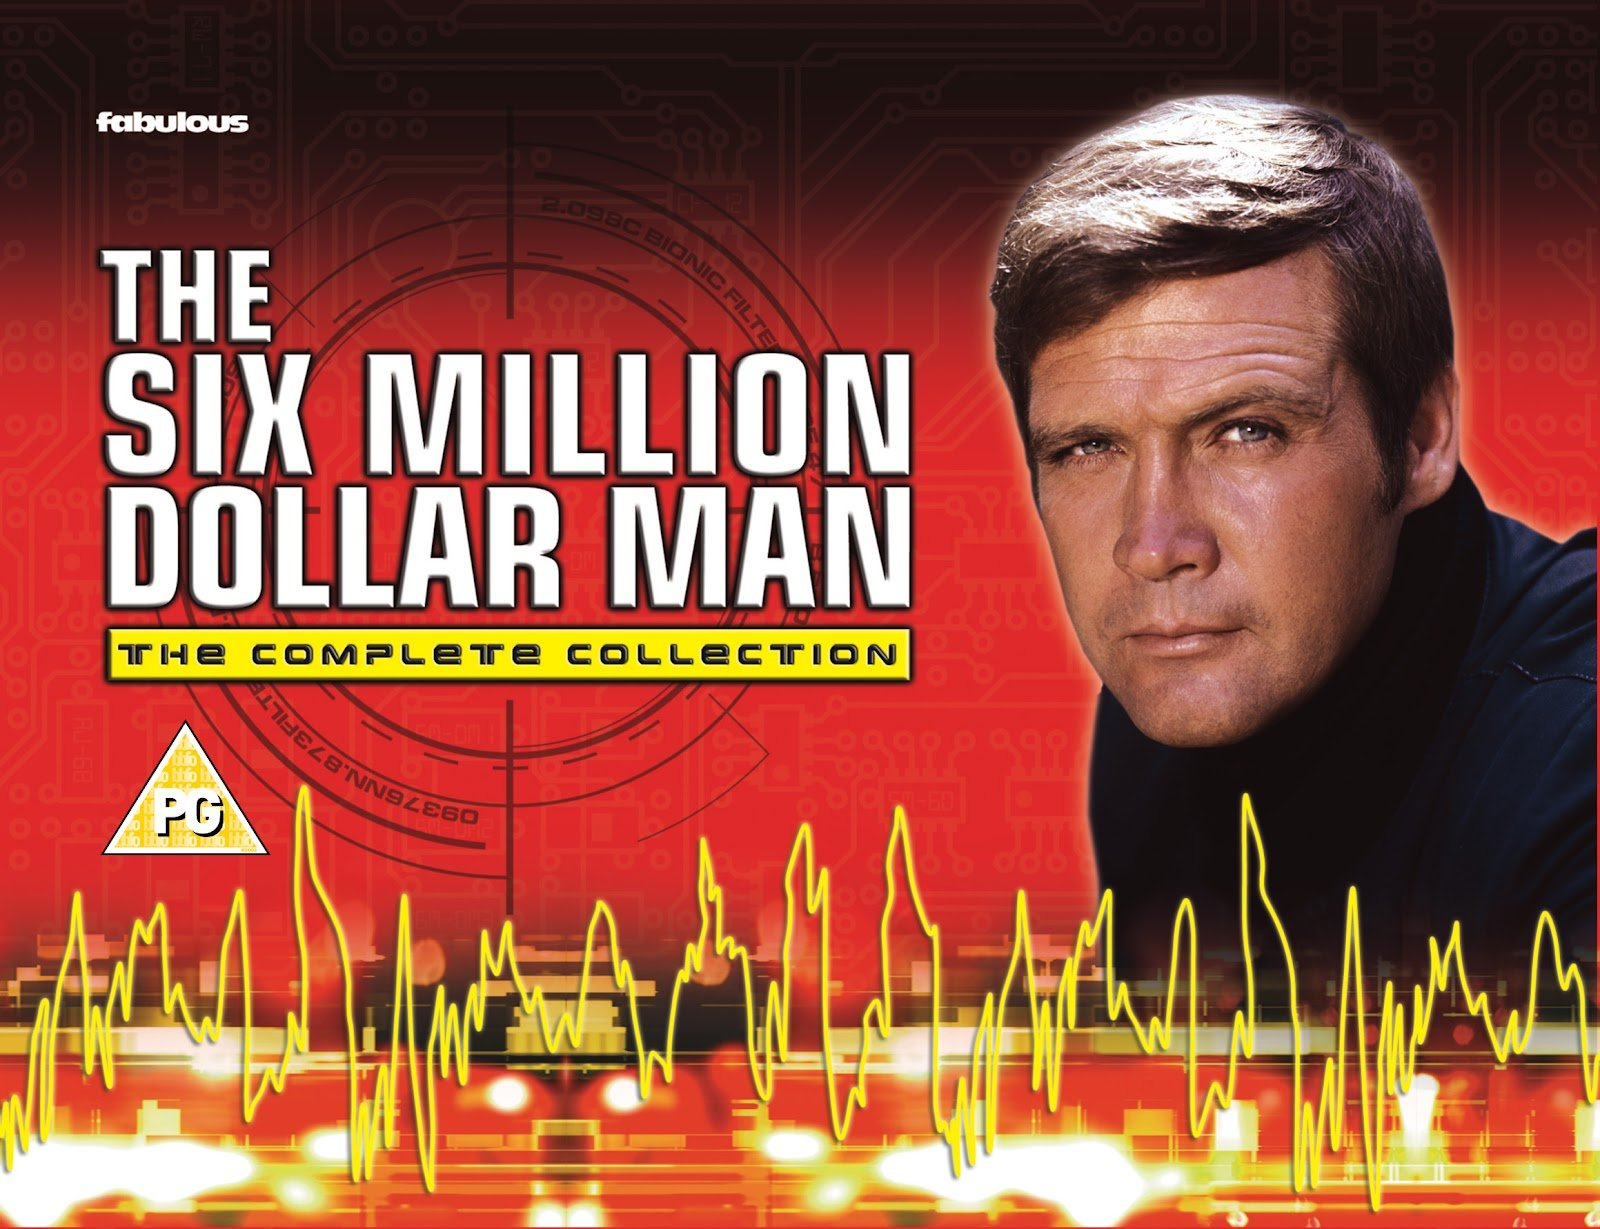 Supreme Hd Wallpaper Download Six Million Dollar Man Wallpaper Gallery